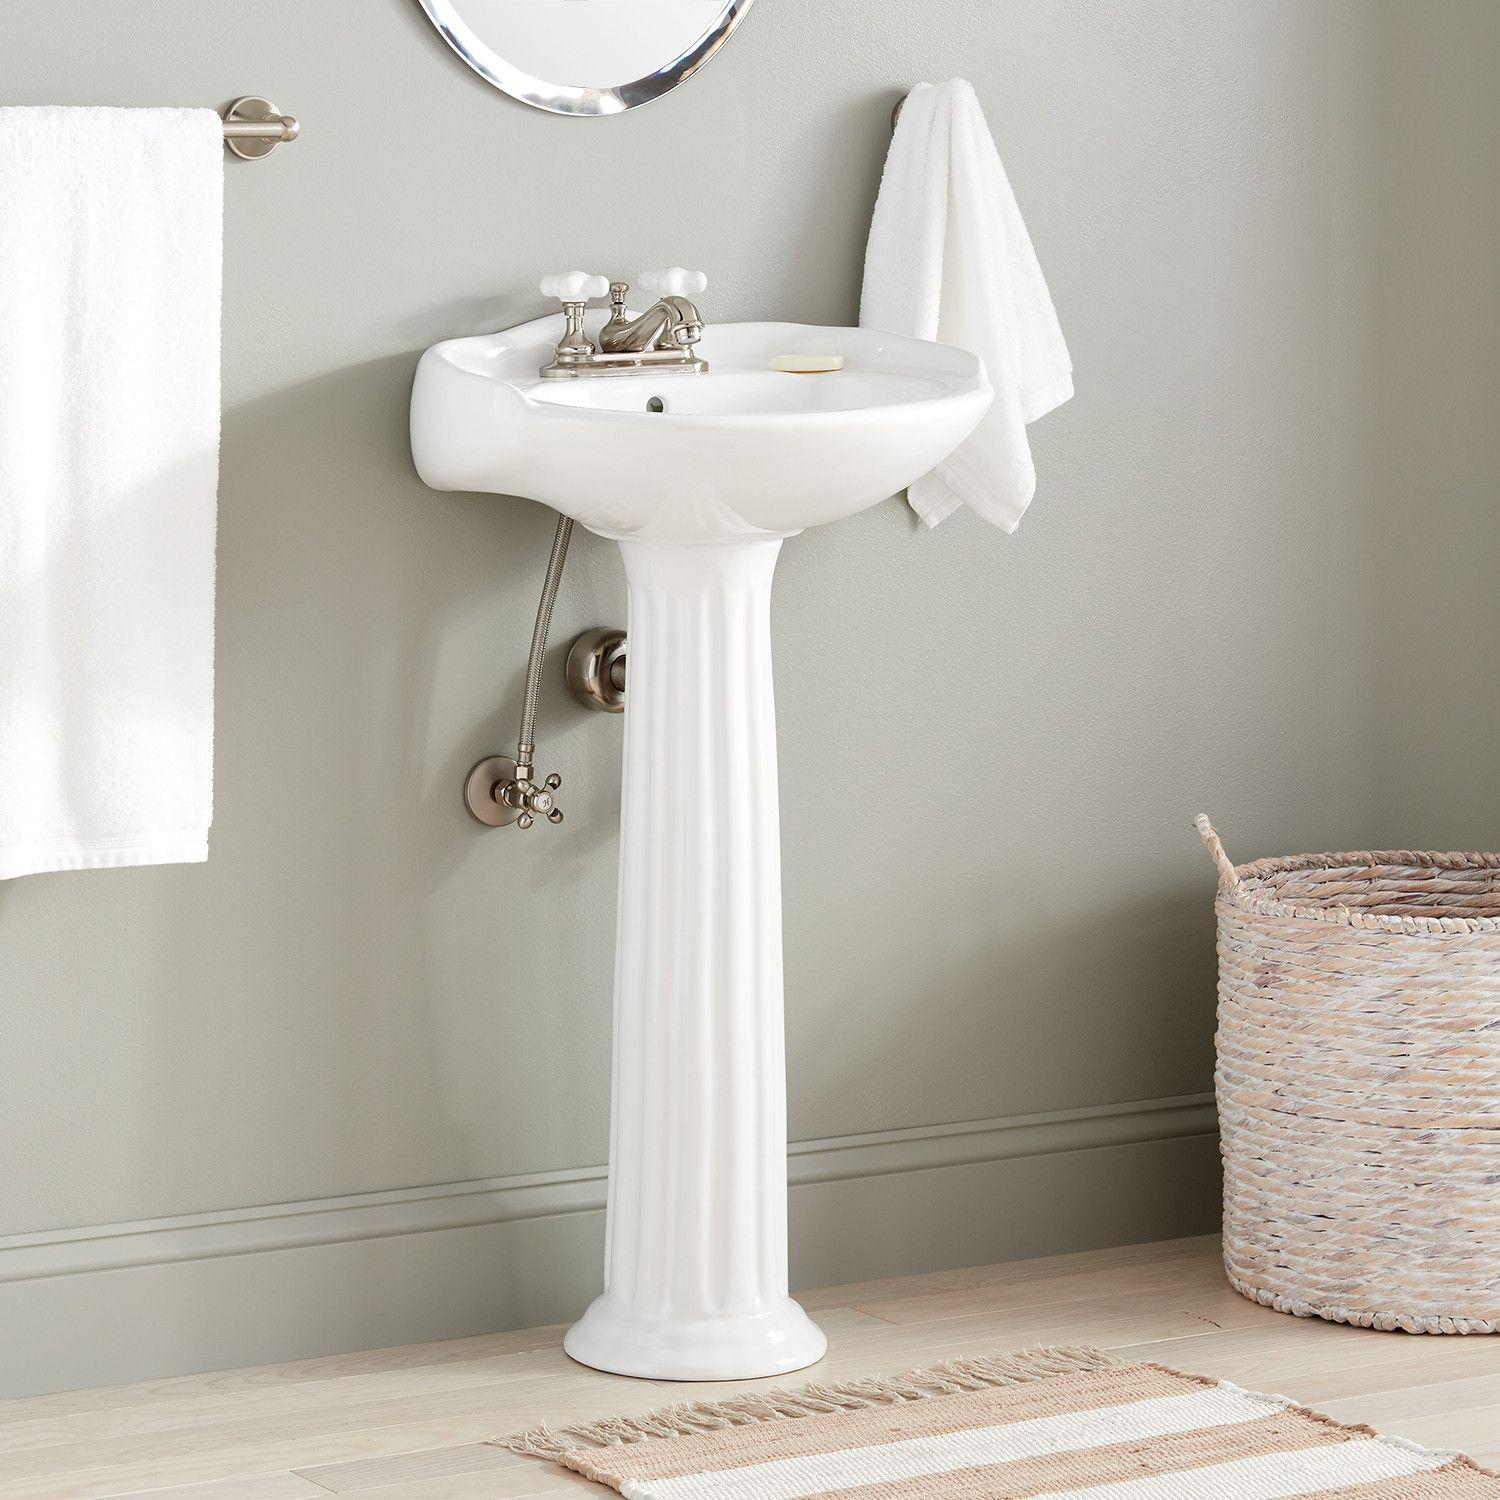 Victorian Porcelain Mini Pedestal Sink Bathroom